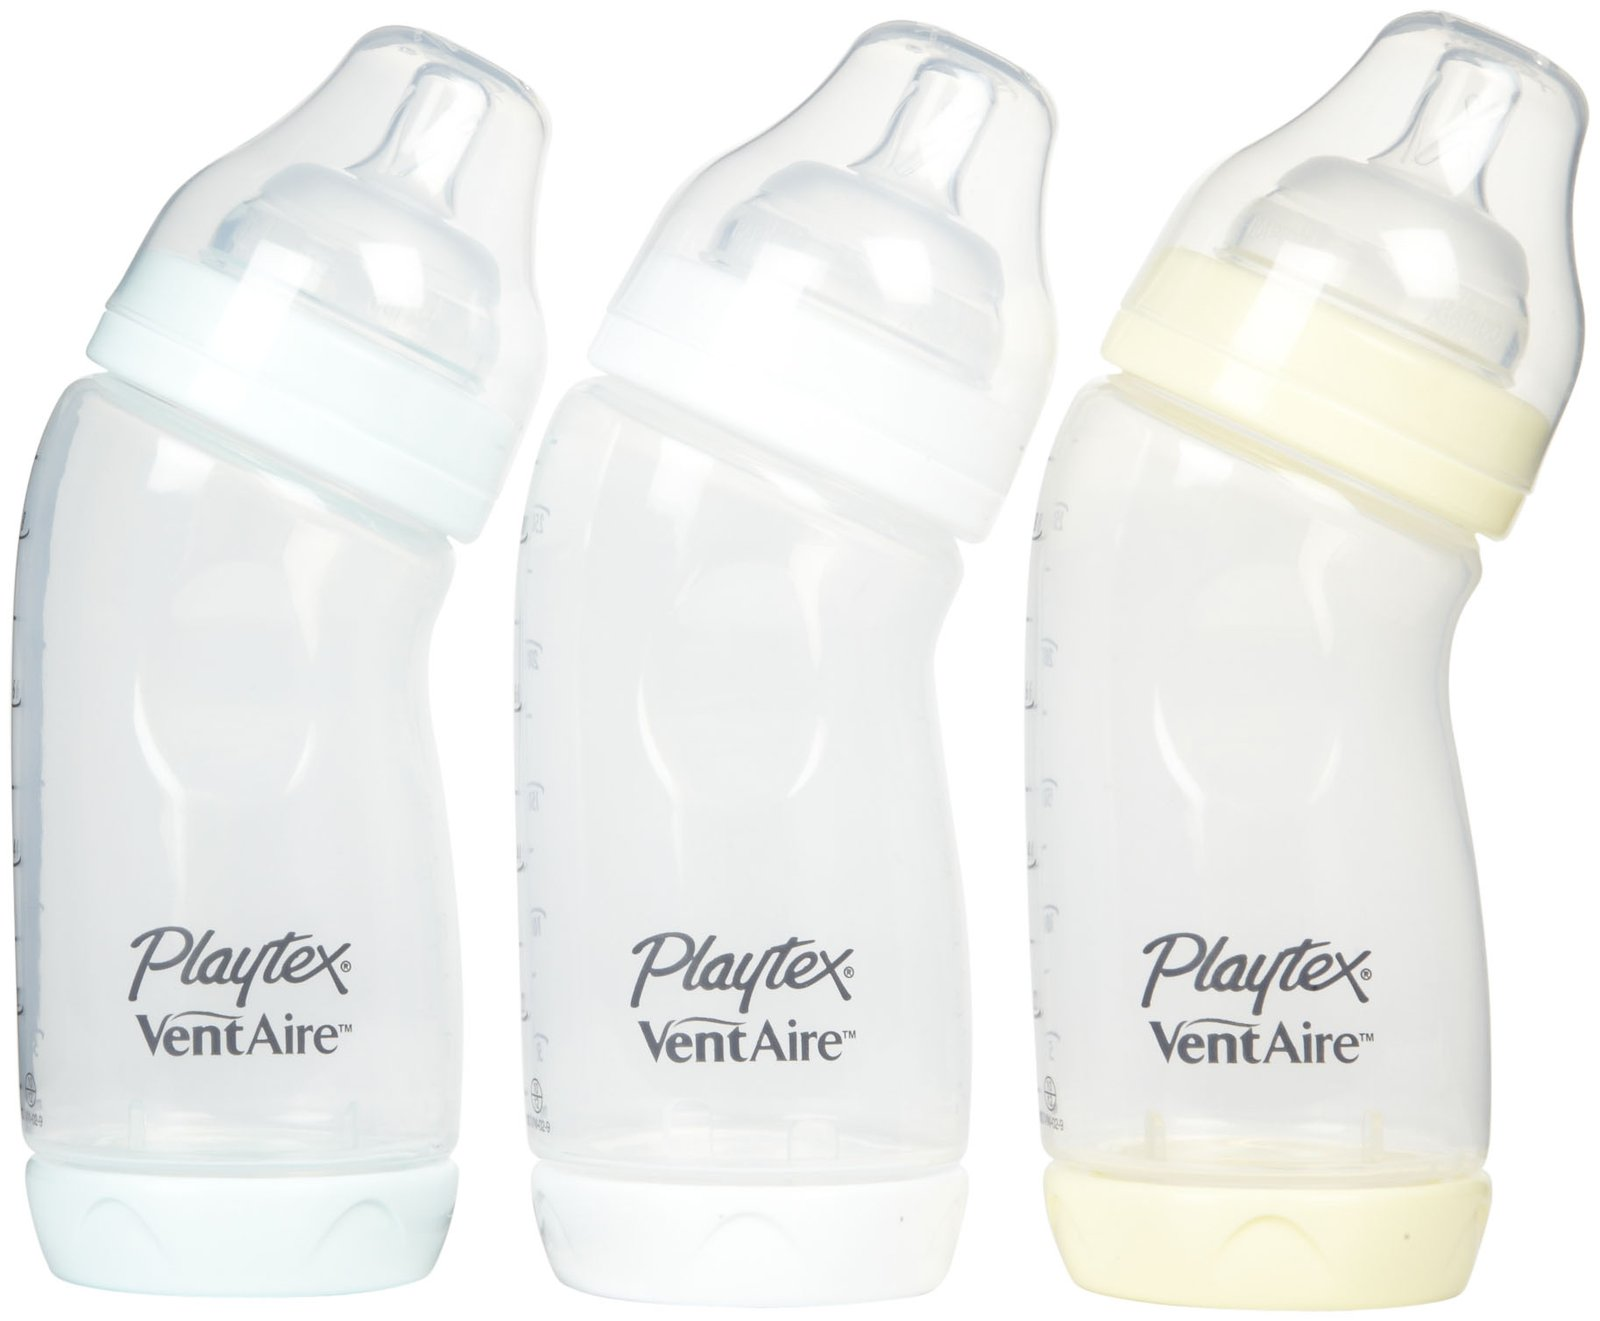 Playtex VentAire Advanced Wide Baby Bottles